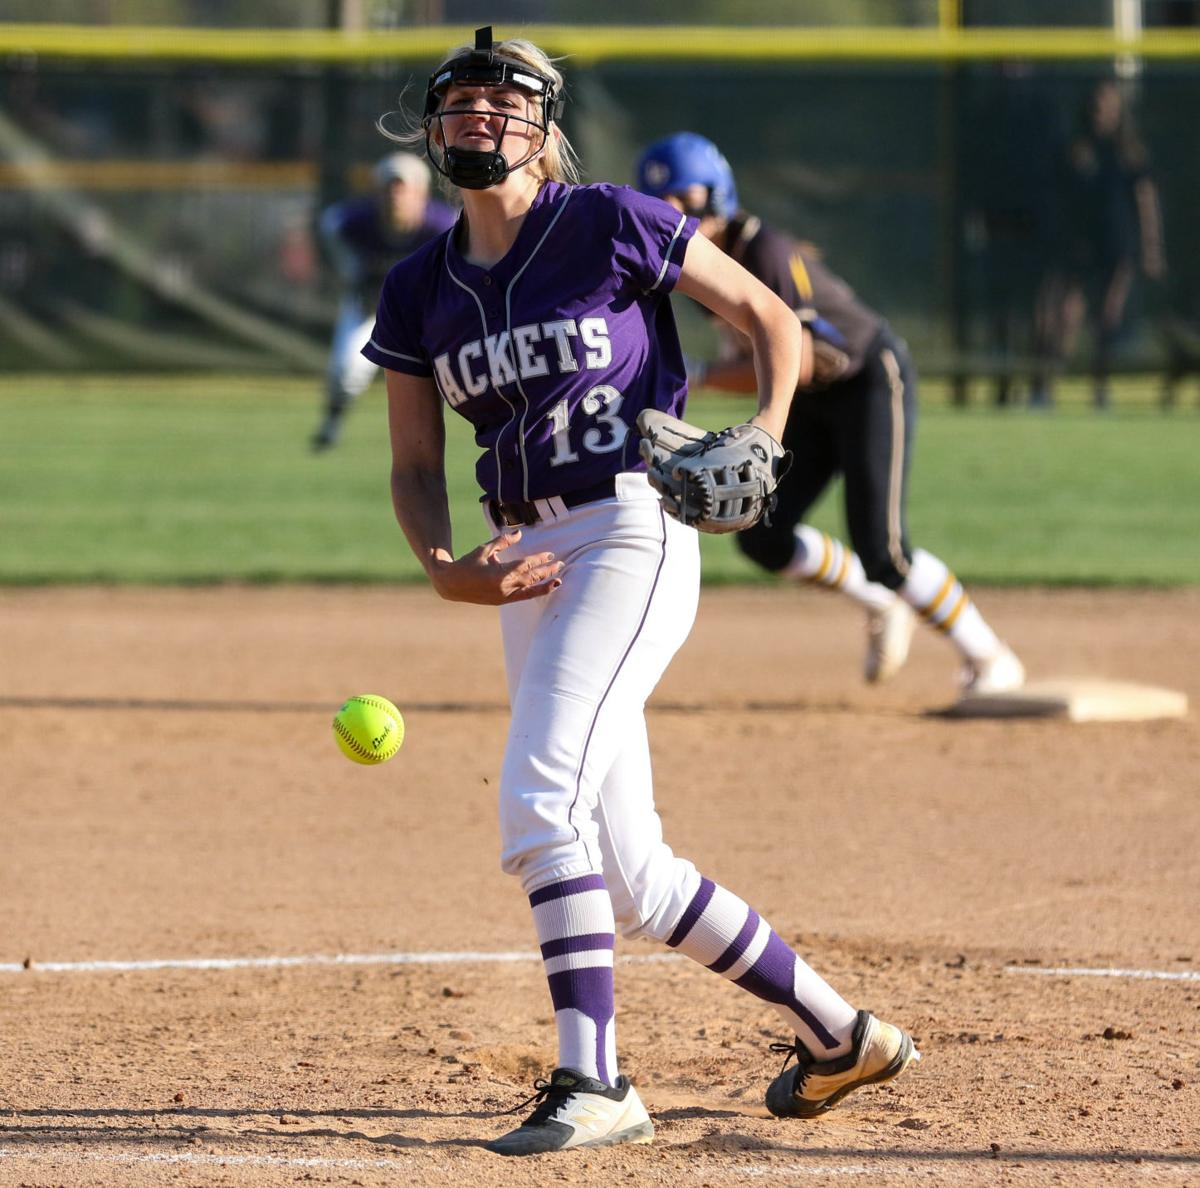 Denham Springs vs Live Oak Softball: Natalie Parker